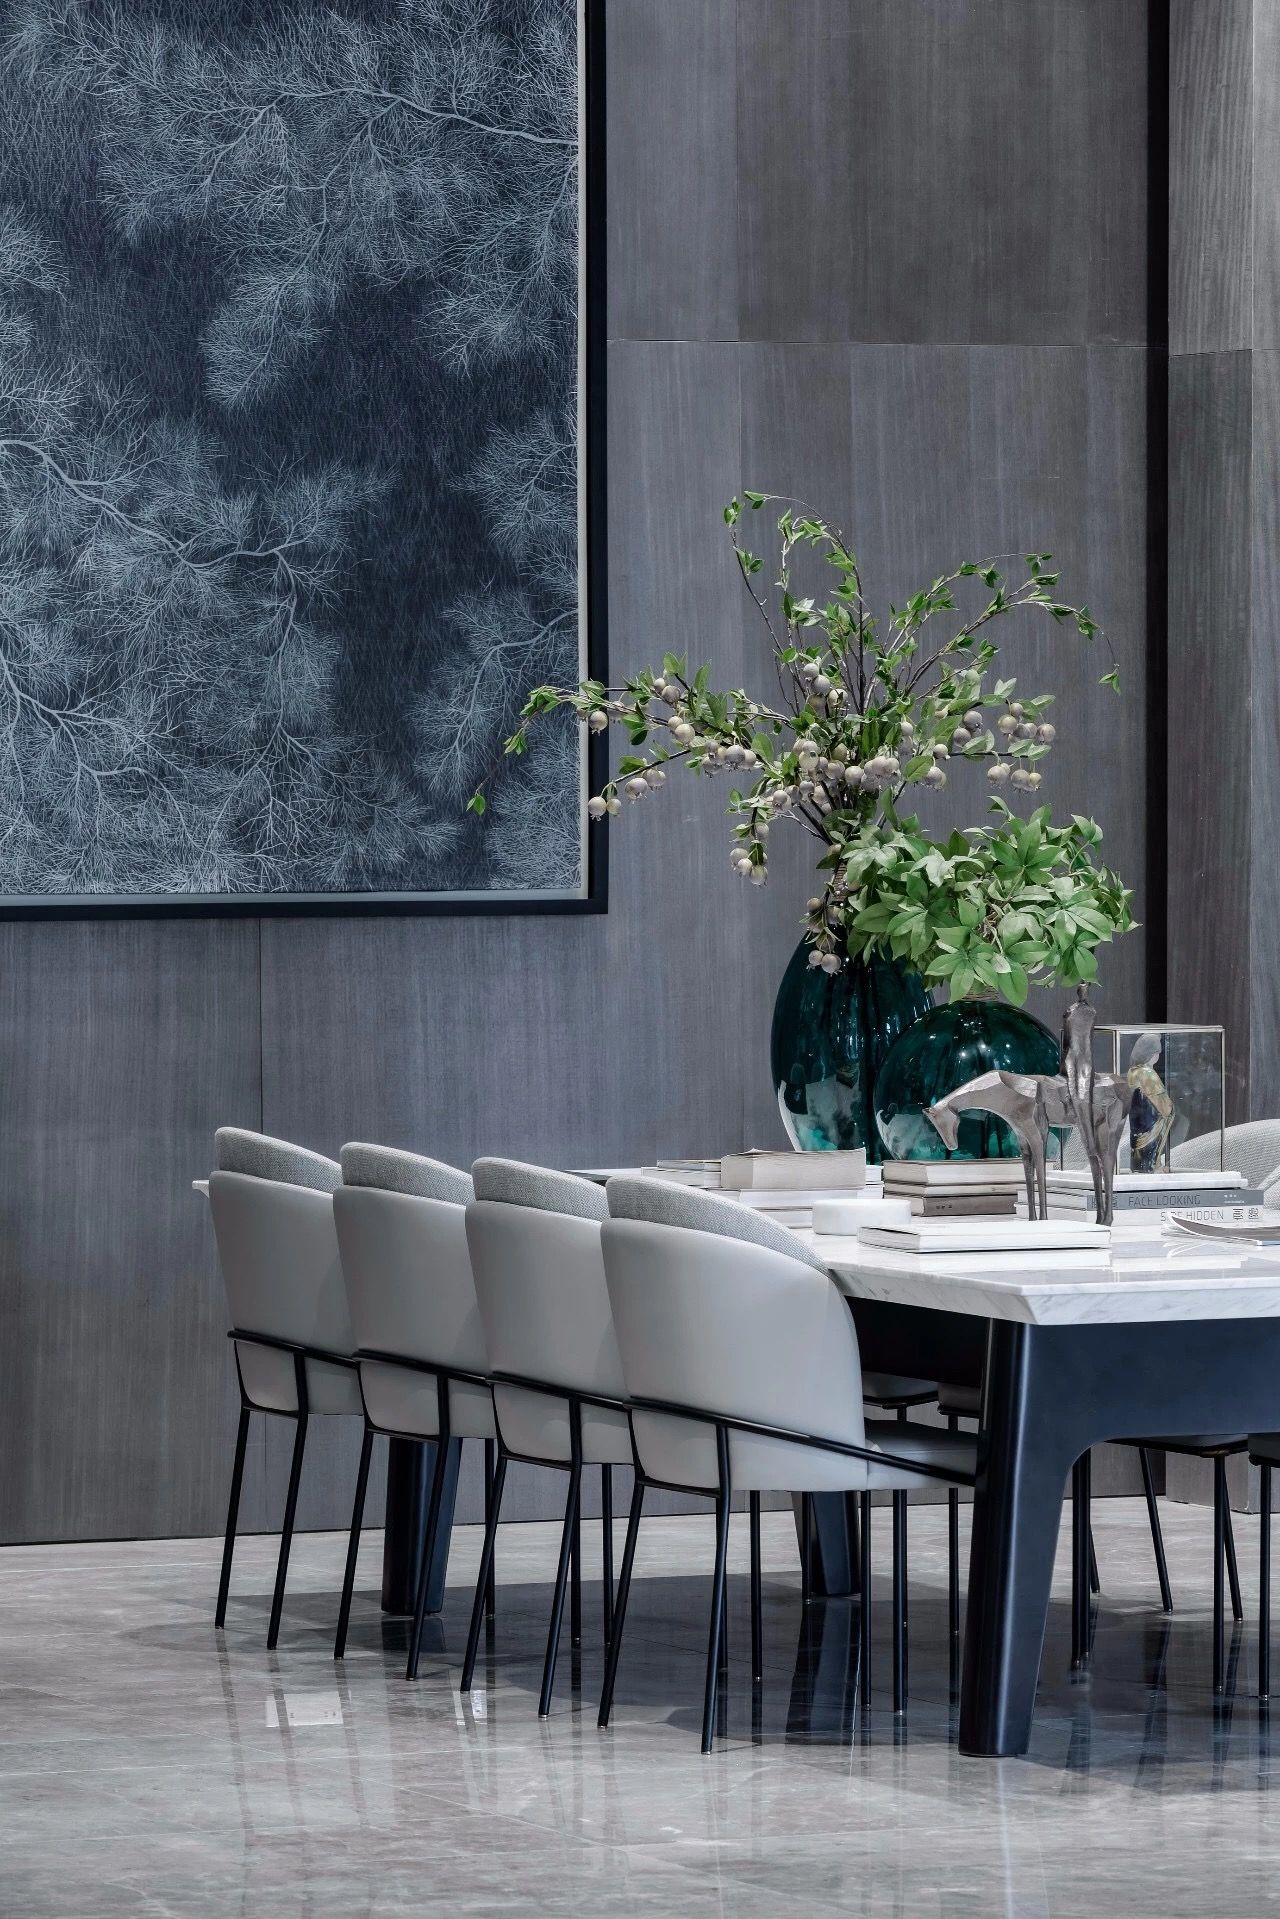 Dining Room Design Ideas While There Is No Extra Lighting On The